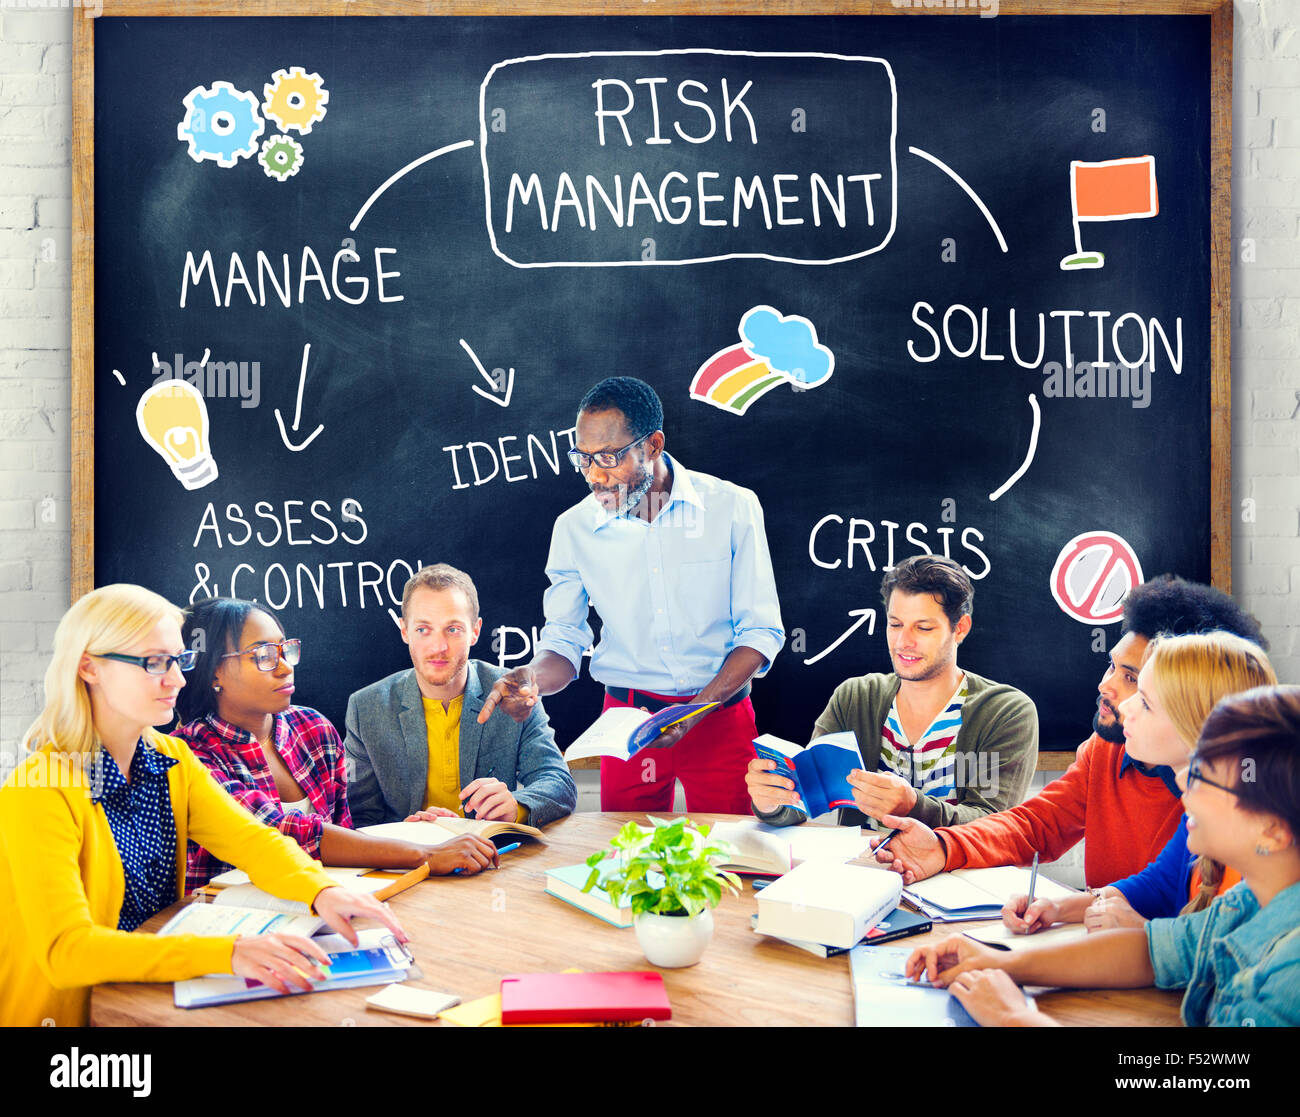 Risk Management Solution Crisis Identity Planning Concept - Stock Image